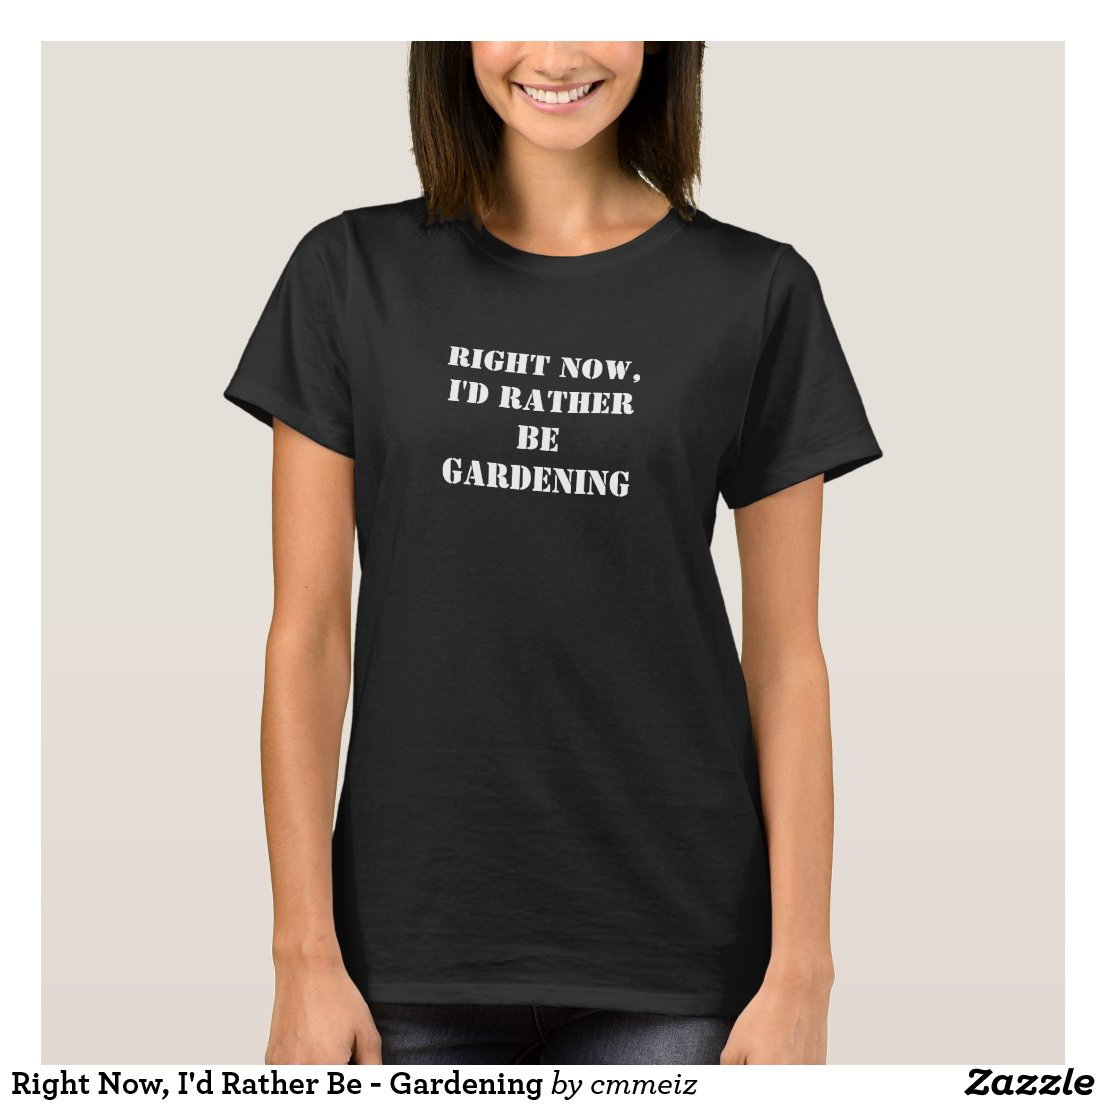 Right Now, I'd Rather Be - Gardening T-Shirt